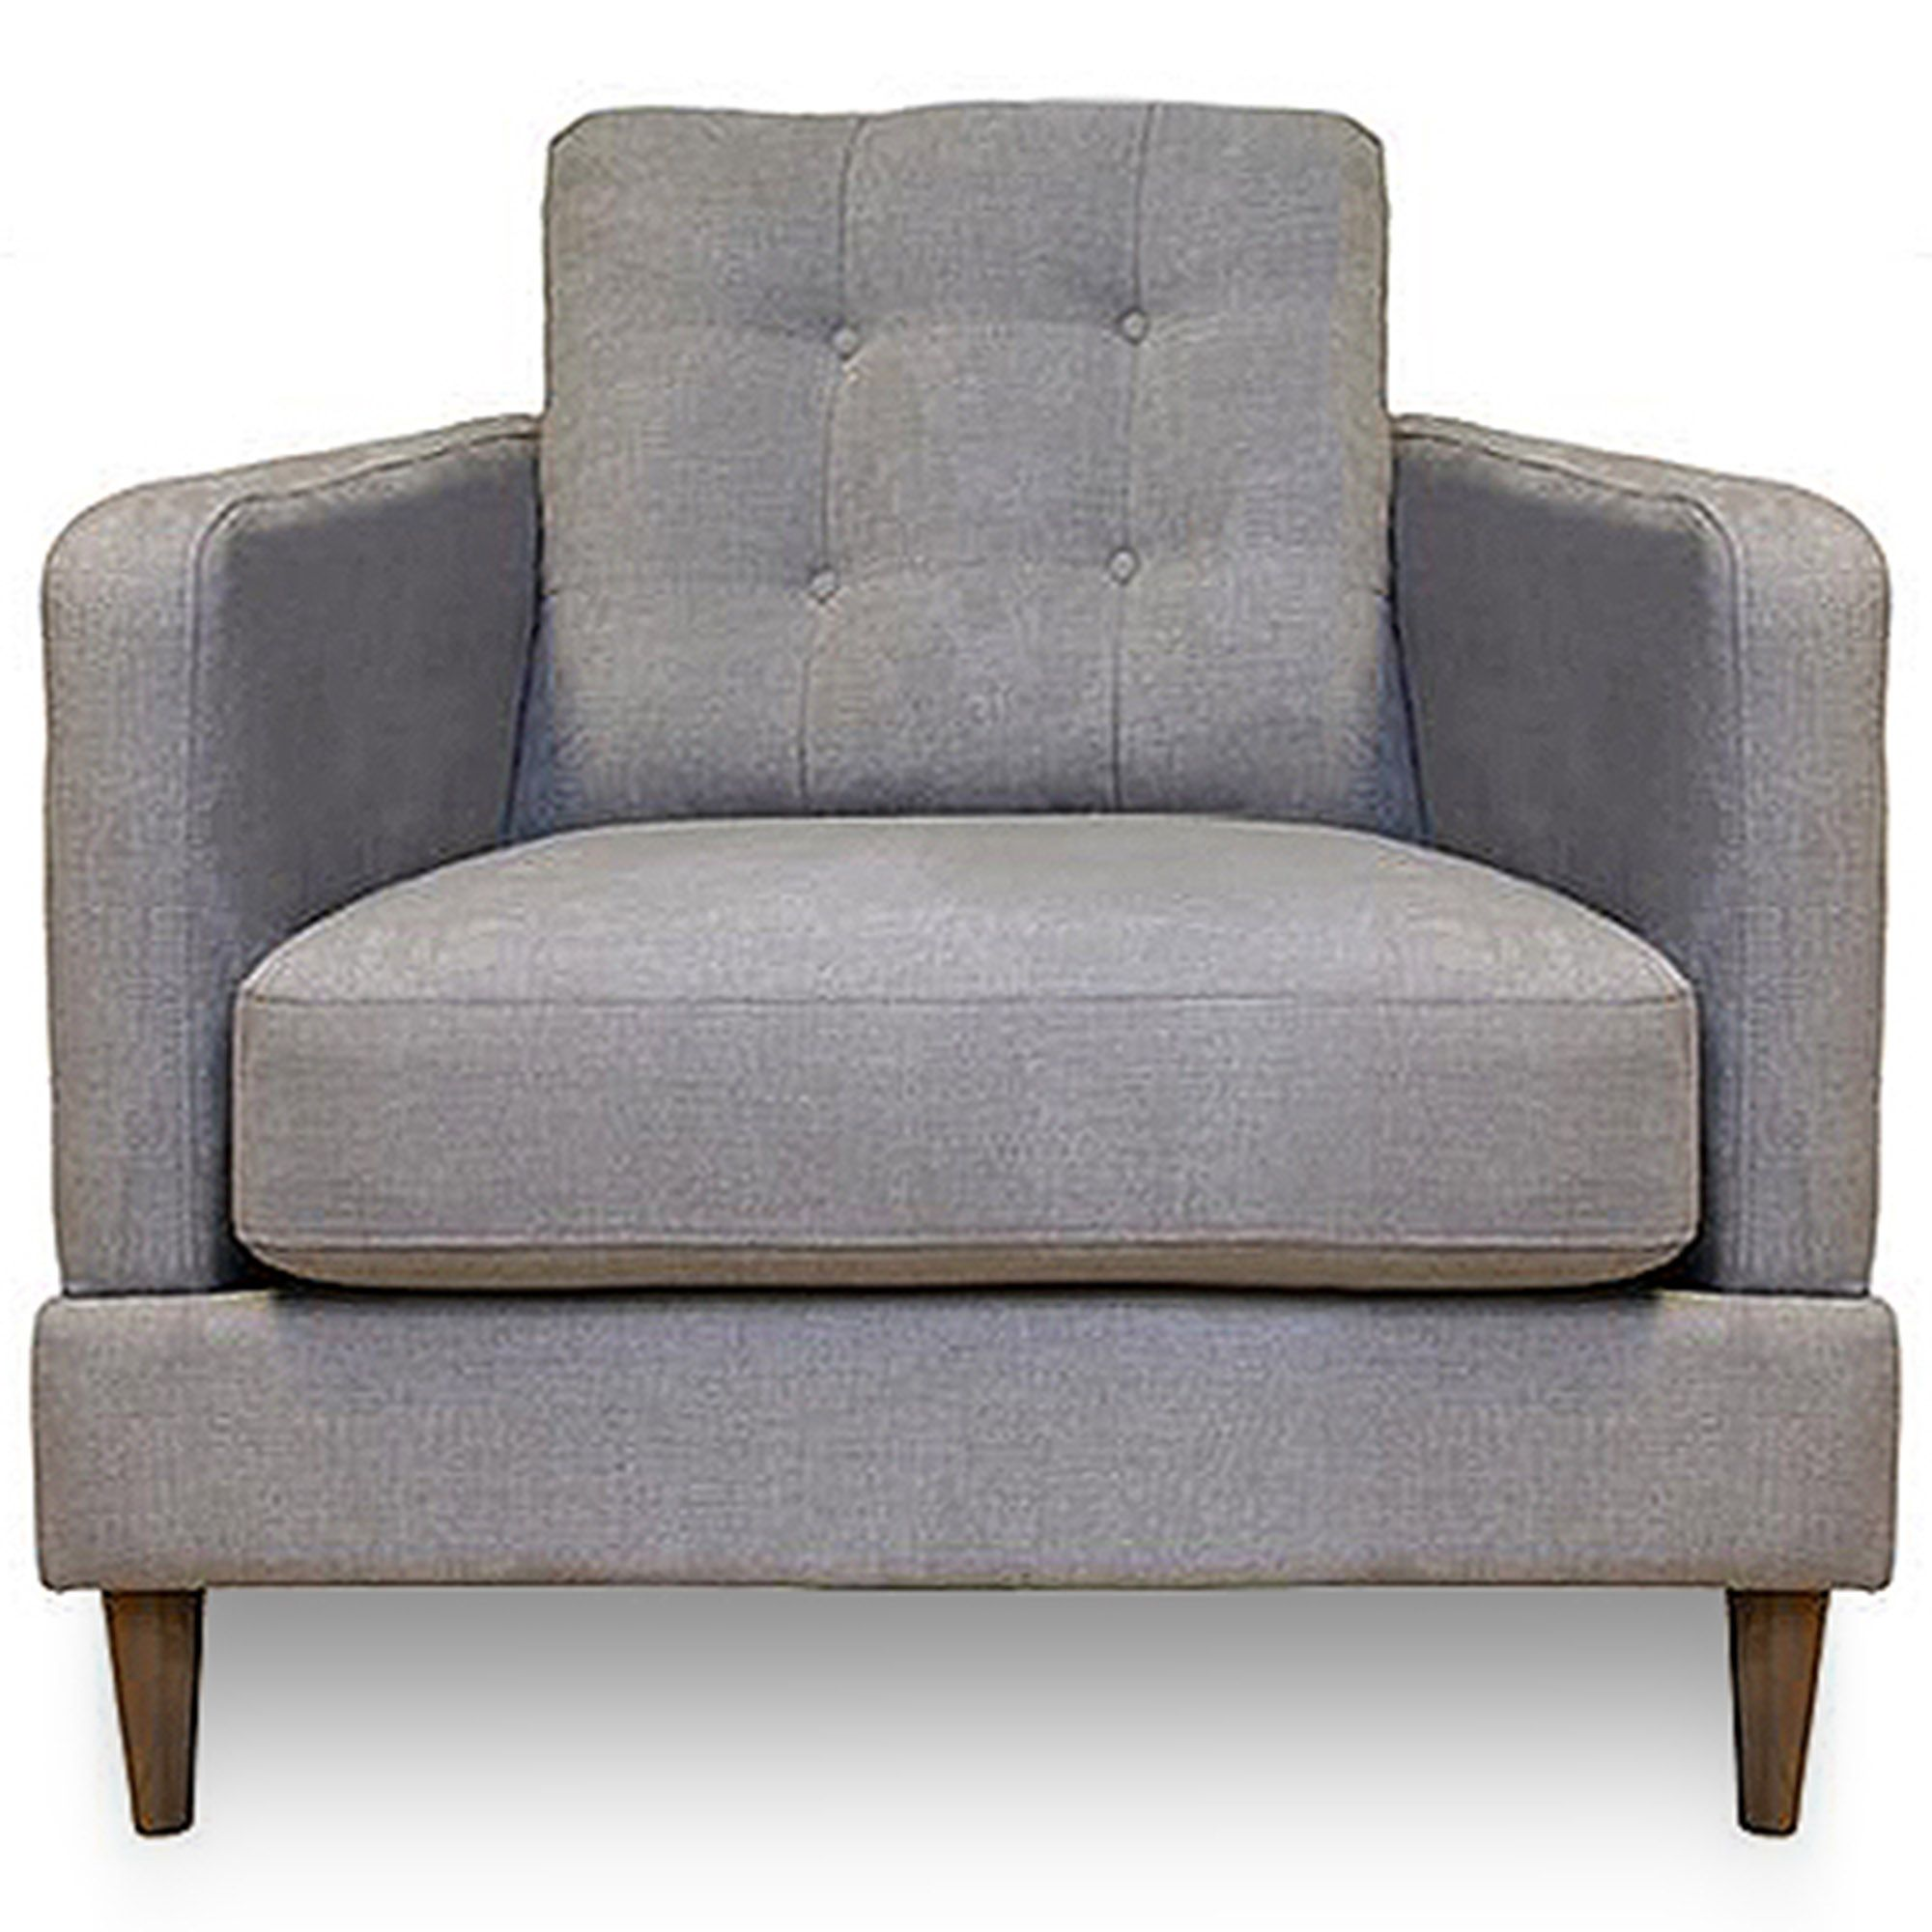 Meubles Furniture Ireland Osaka Armchair Fabric A